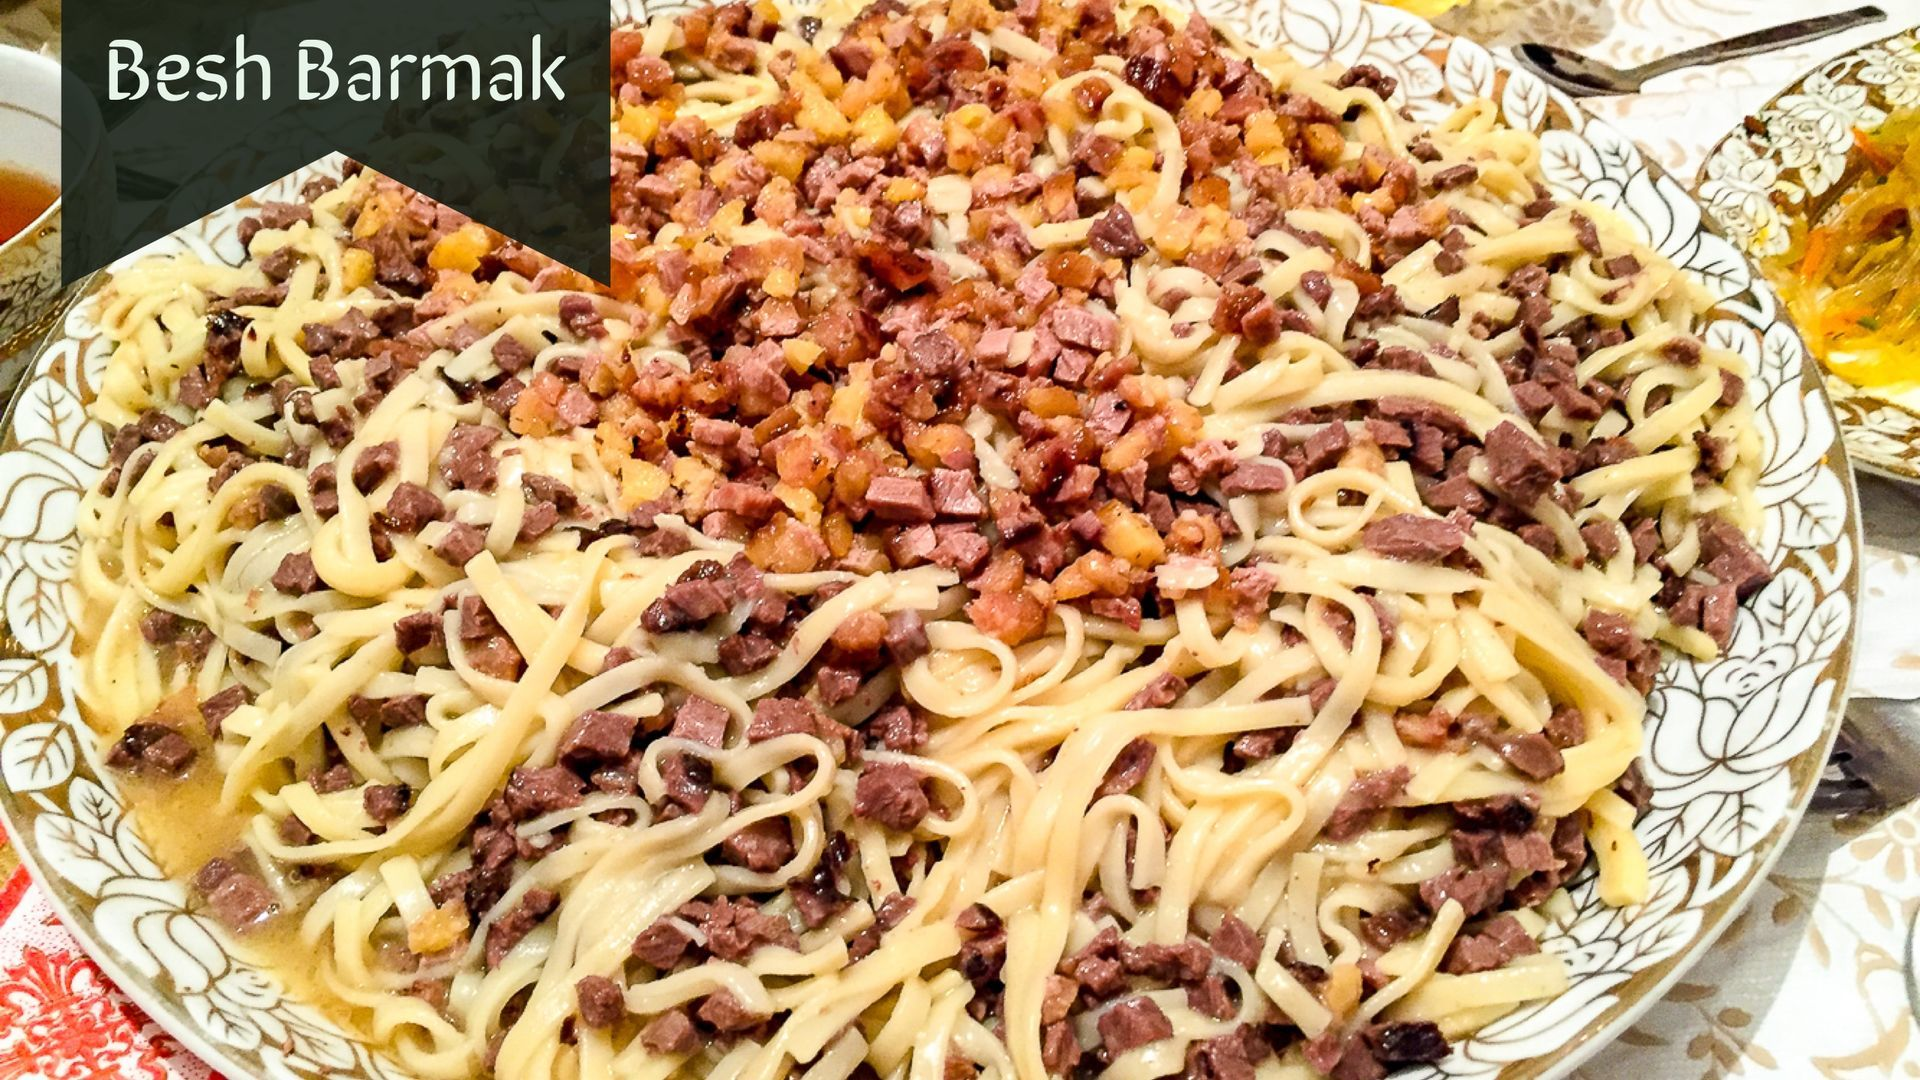 Besh Barmak national dish and cuisine of Kyrgyzstan